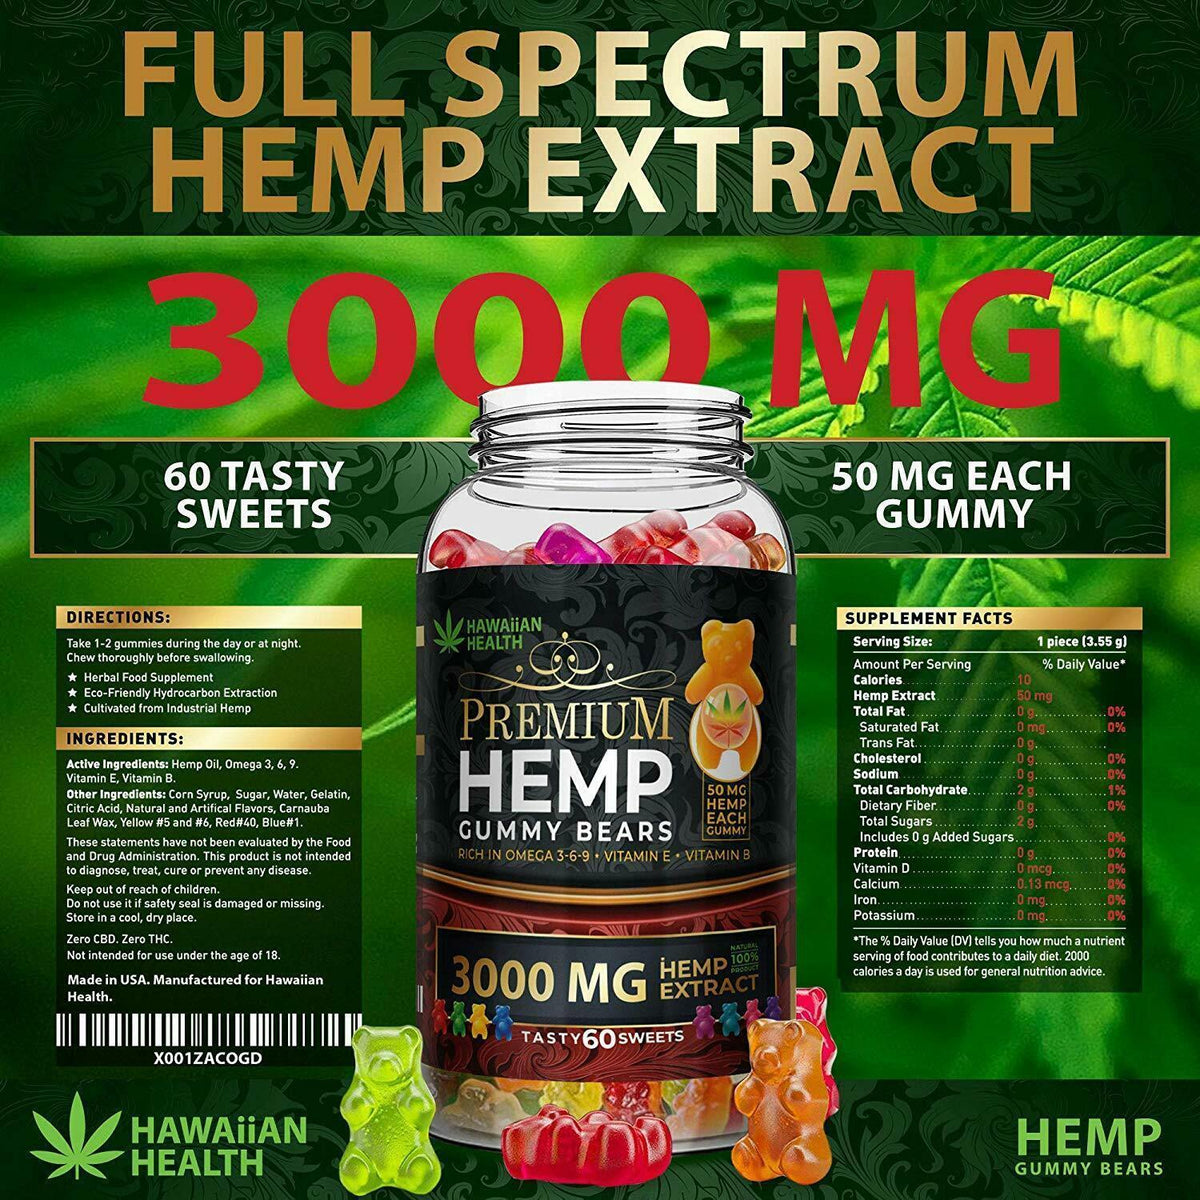 Natural Hemp Gummies 3000MG 50MG Per Fruity Gummy Bear Full Spectrum edible 0CBD